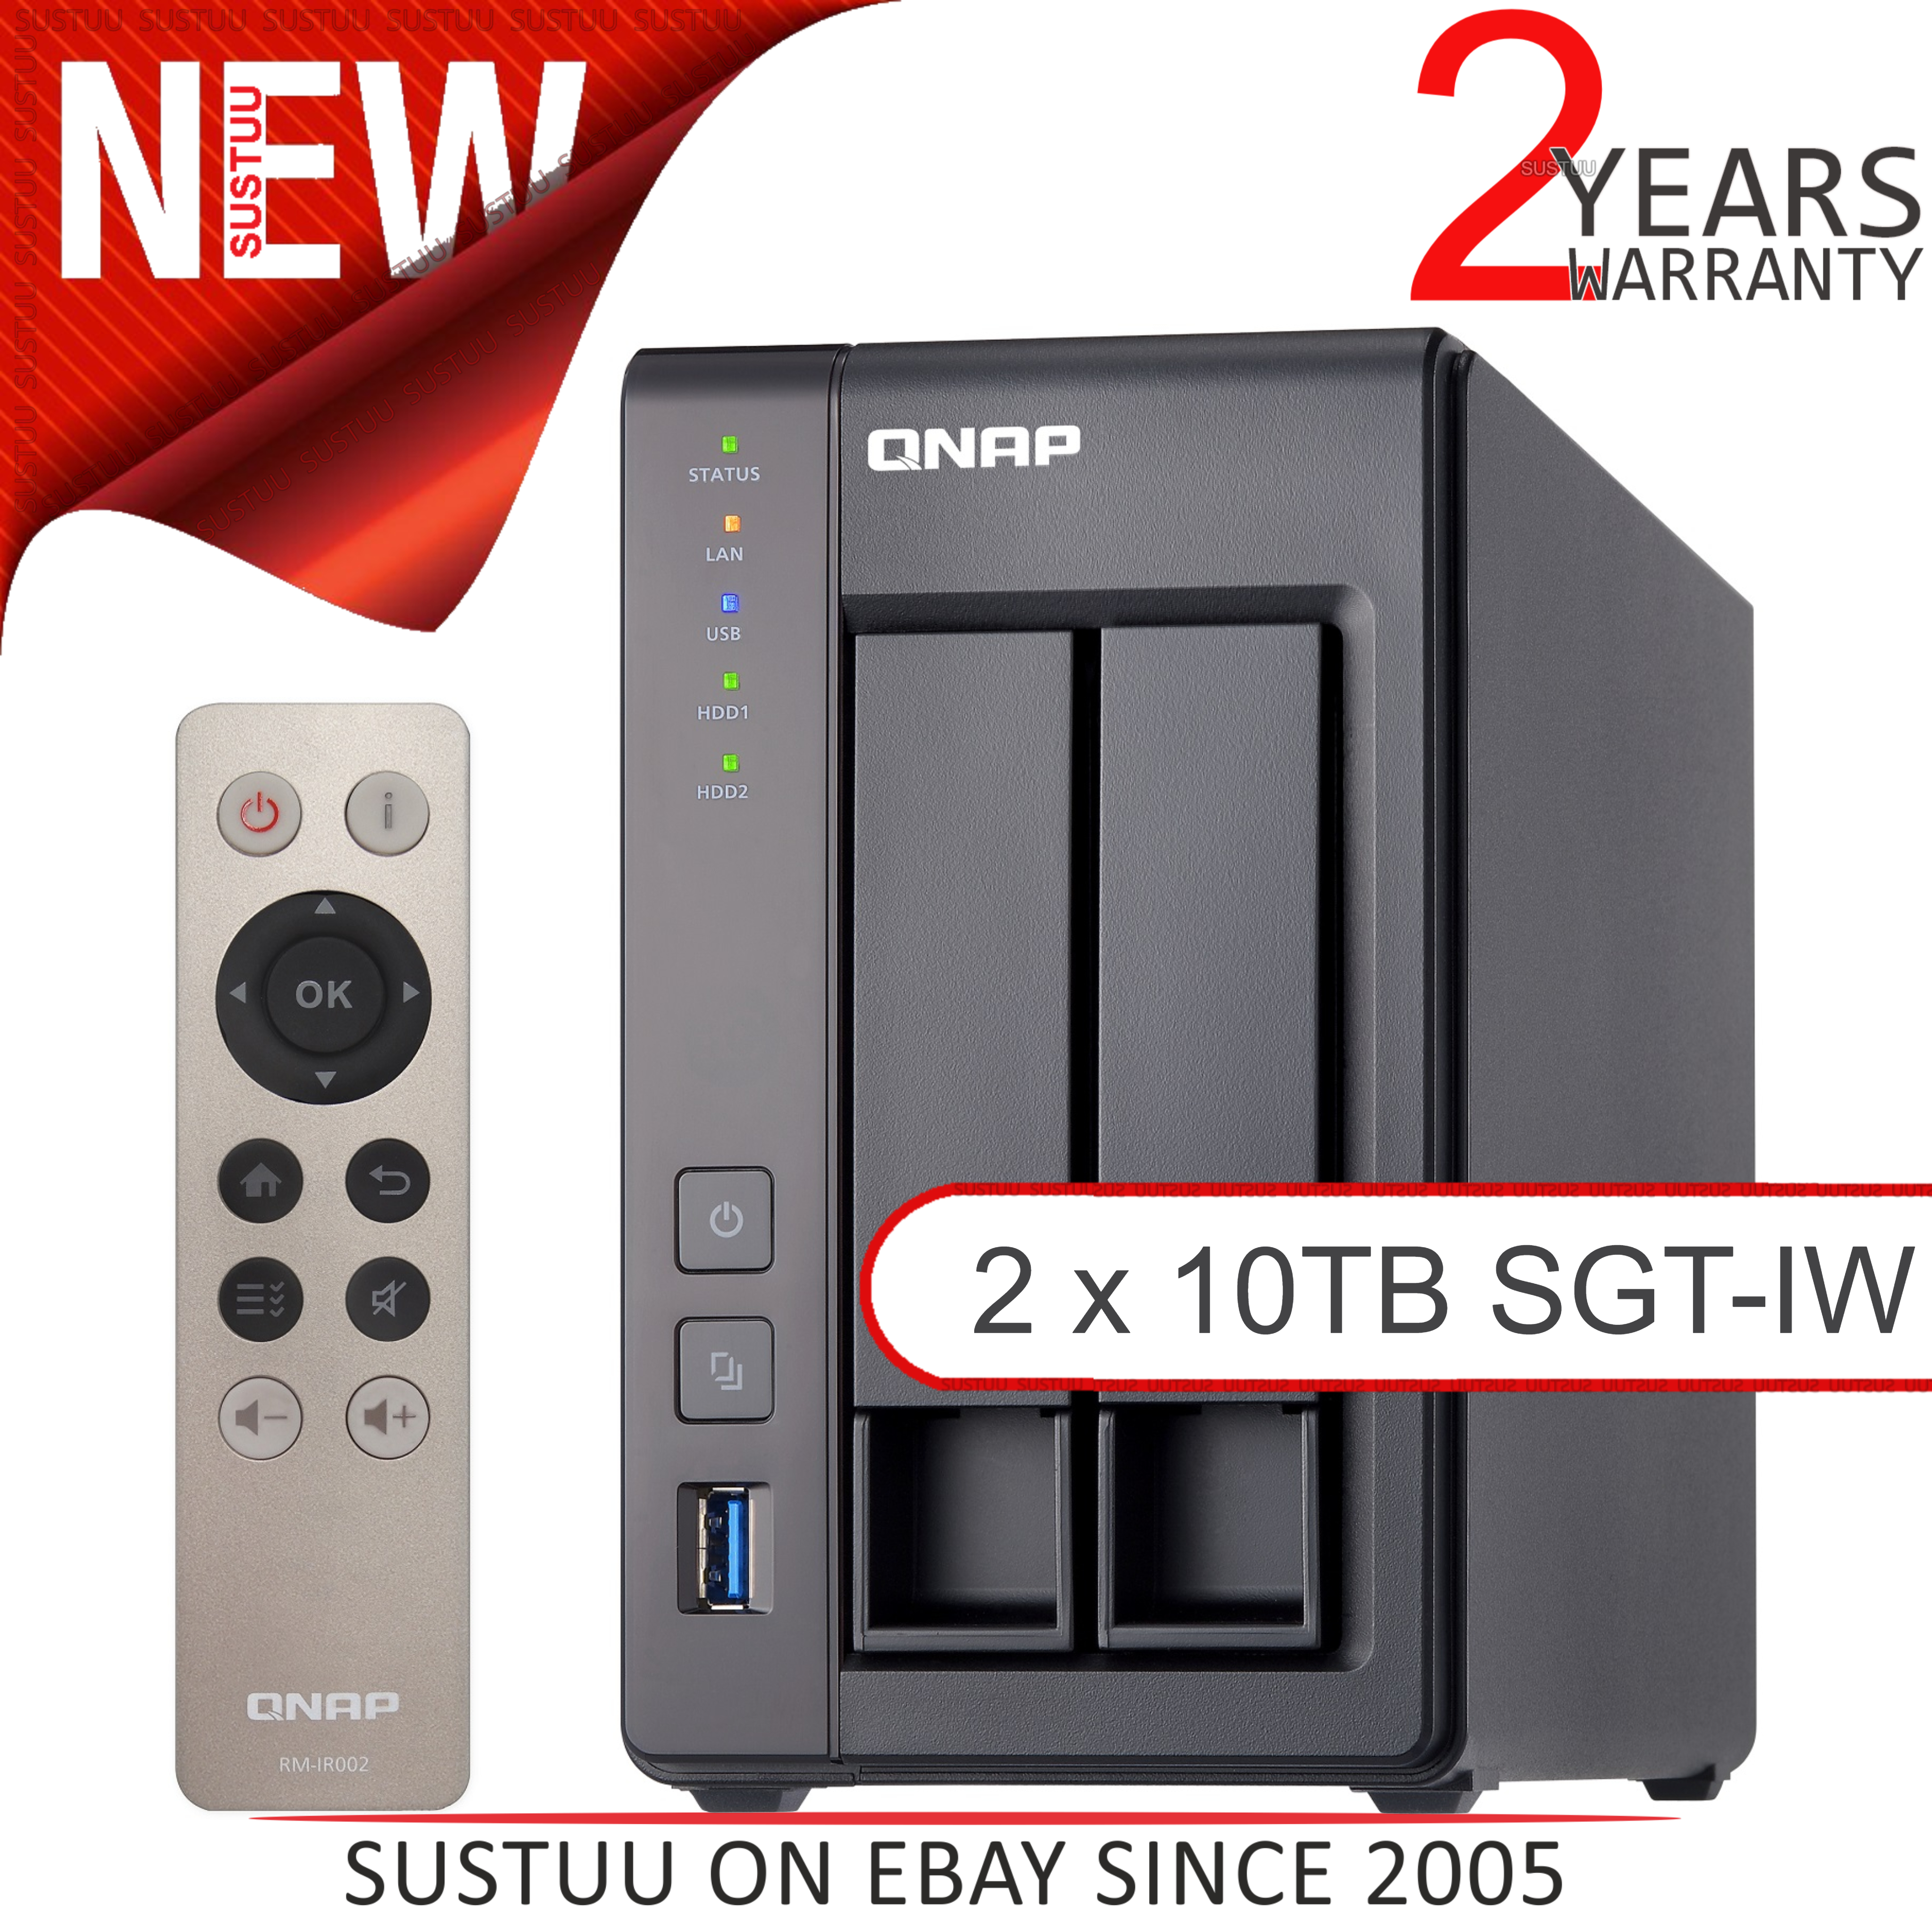 Details about QNAP 2 Bay Desktop NAS Unit│20TB SGT-IW Hard Drives│Storage  Device with 8GB RAM